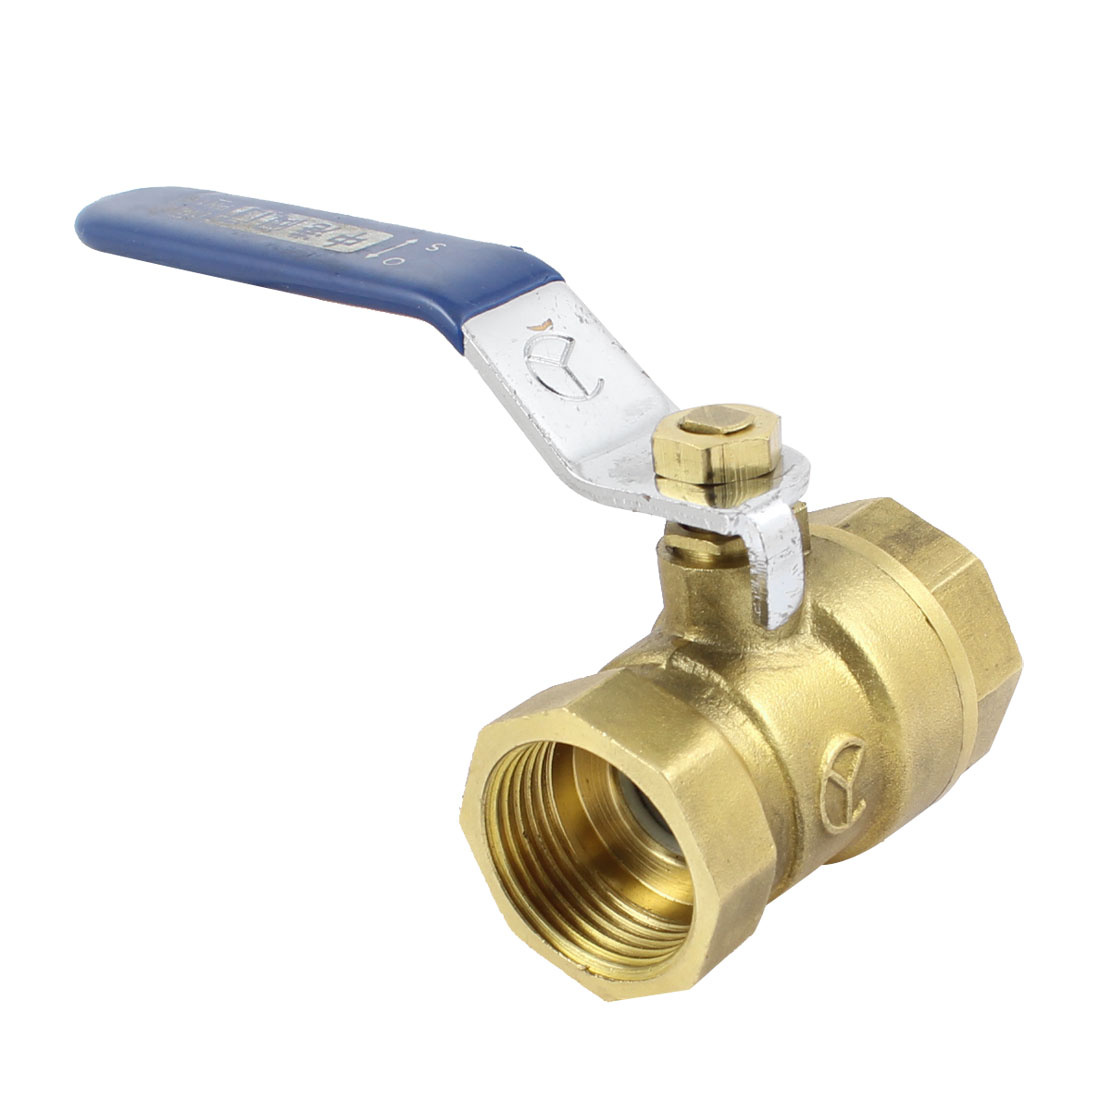 "Female to Female 3/4"" PT Threaded Blue Lever Handle Full Port Brass Ball Valve"